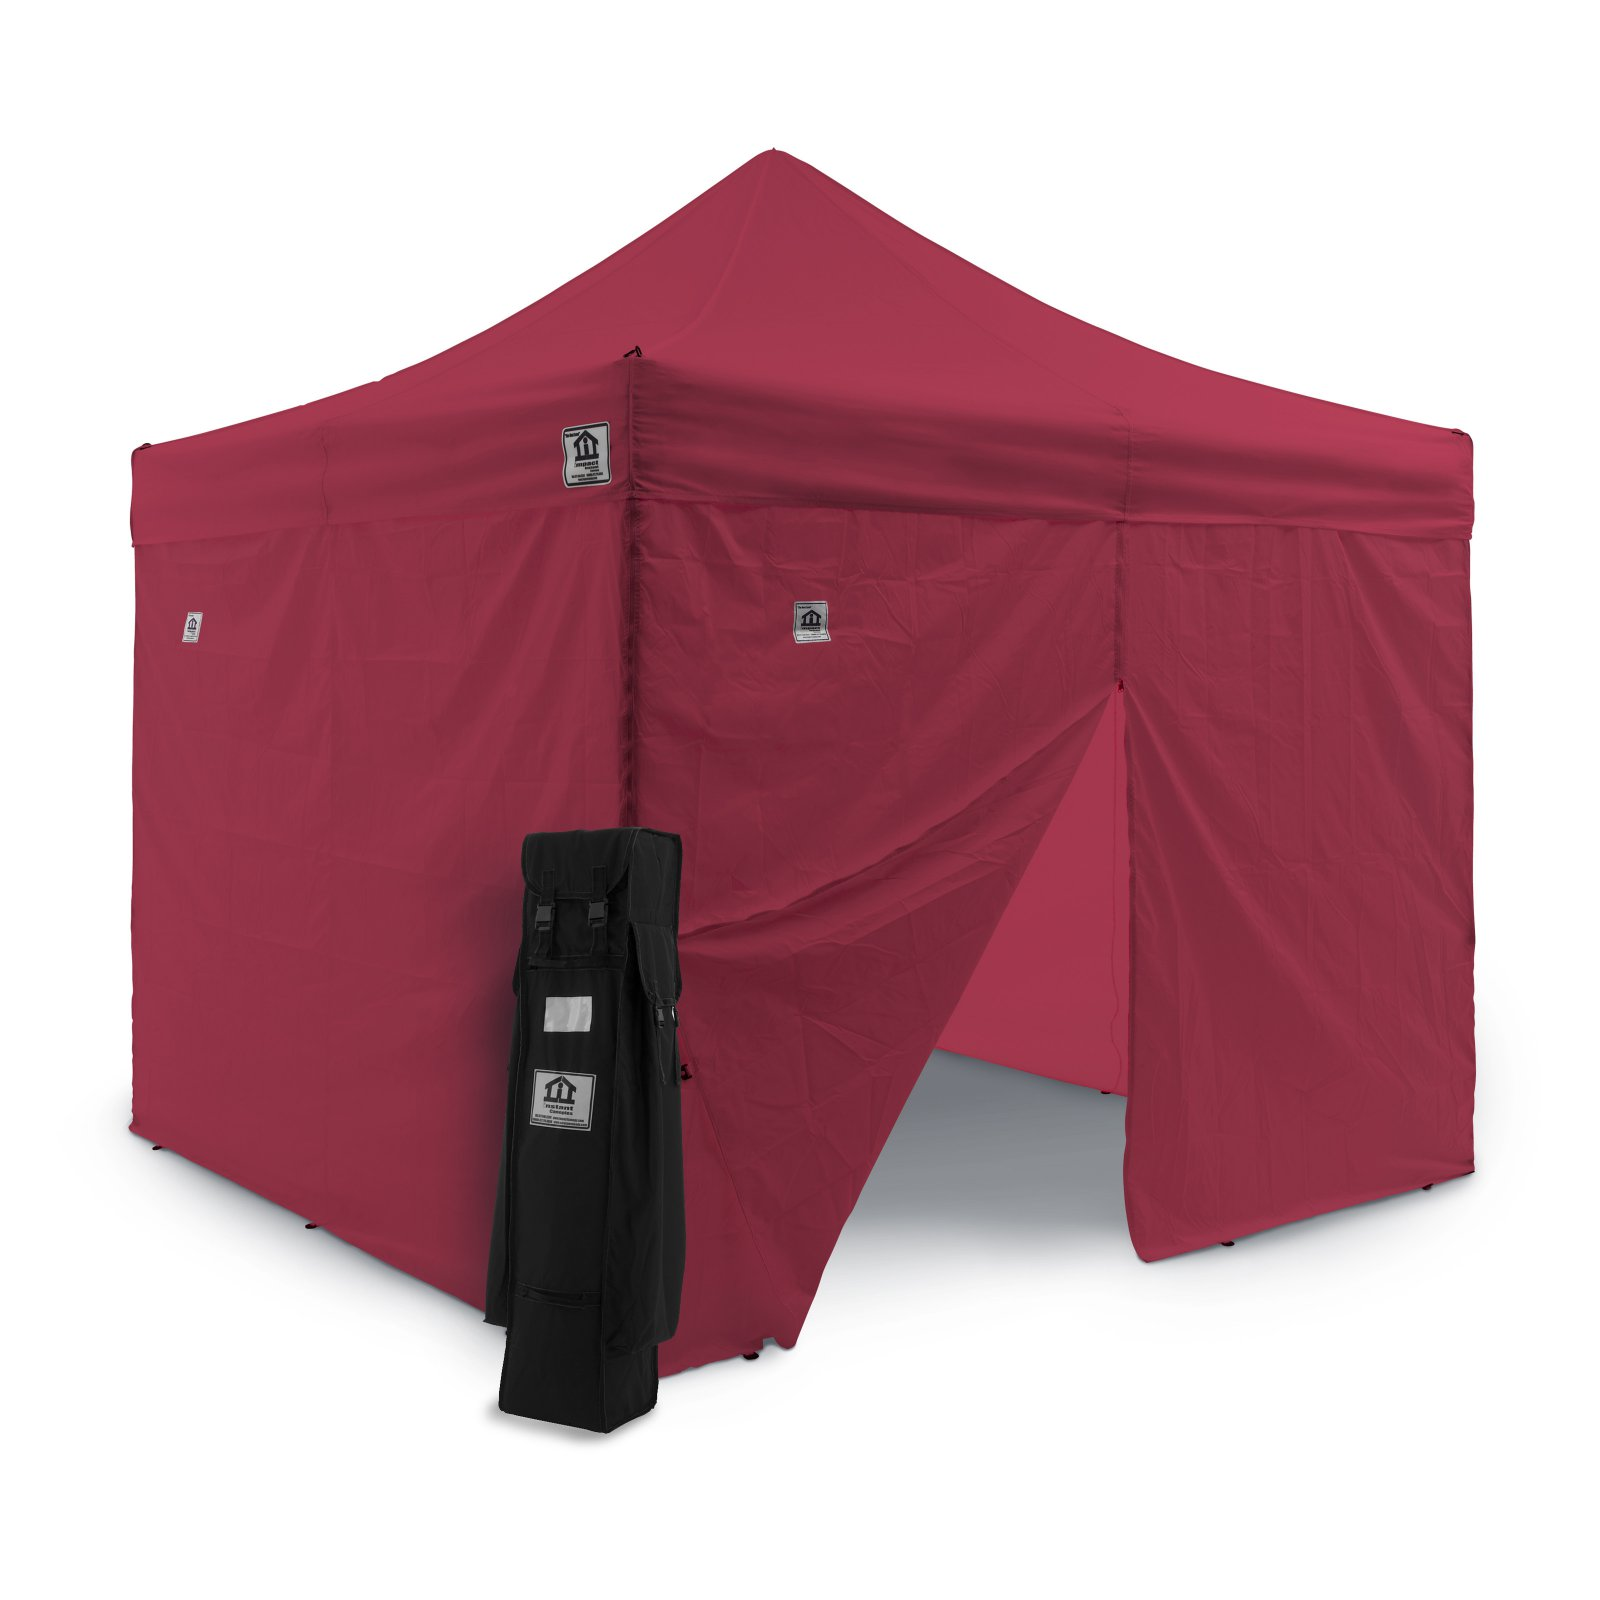 Impact Canopy 10 x 10 ft. Pop Up Canopy with Mosquito Mesh Wall Screen